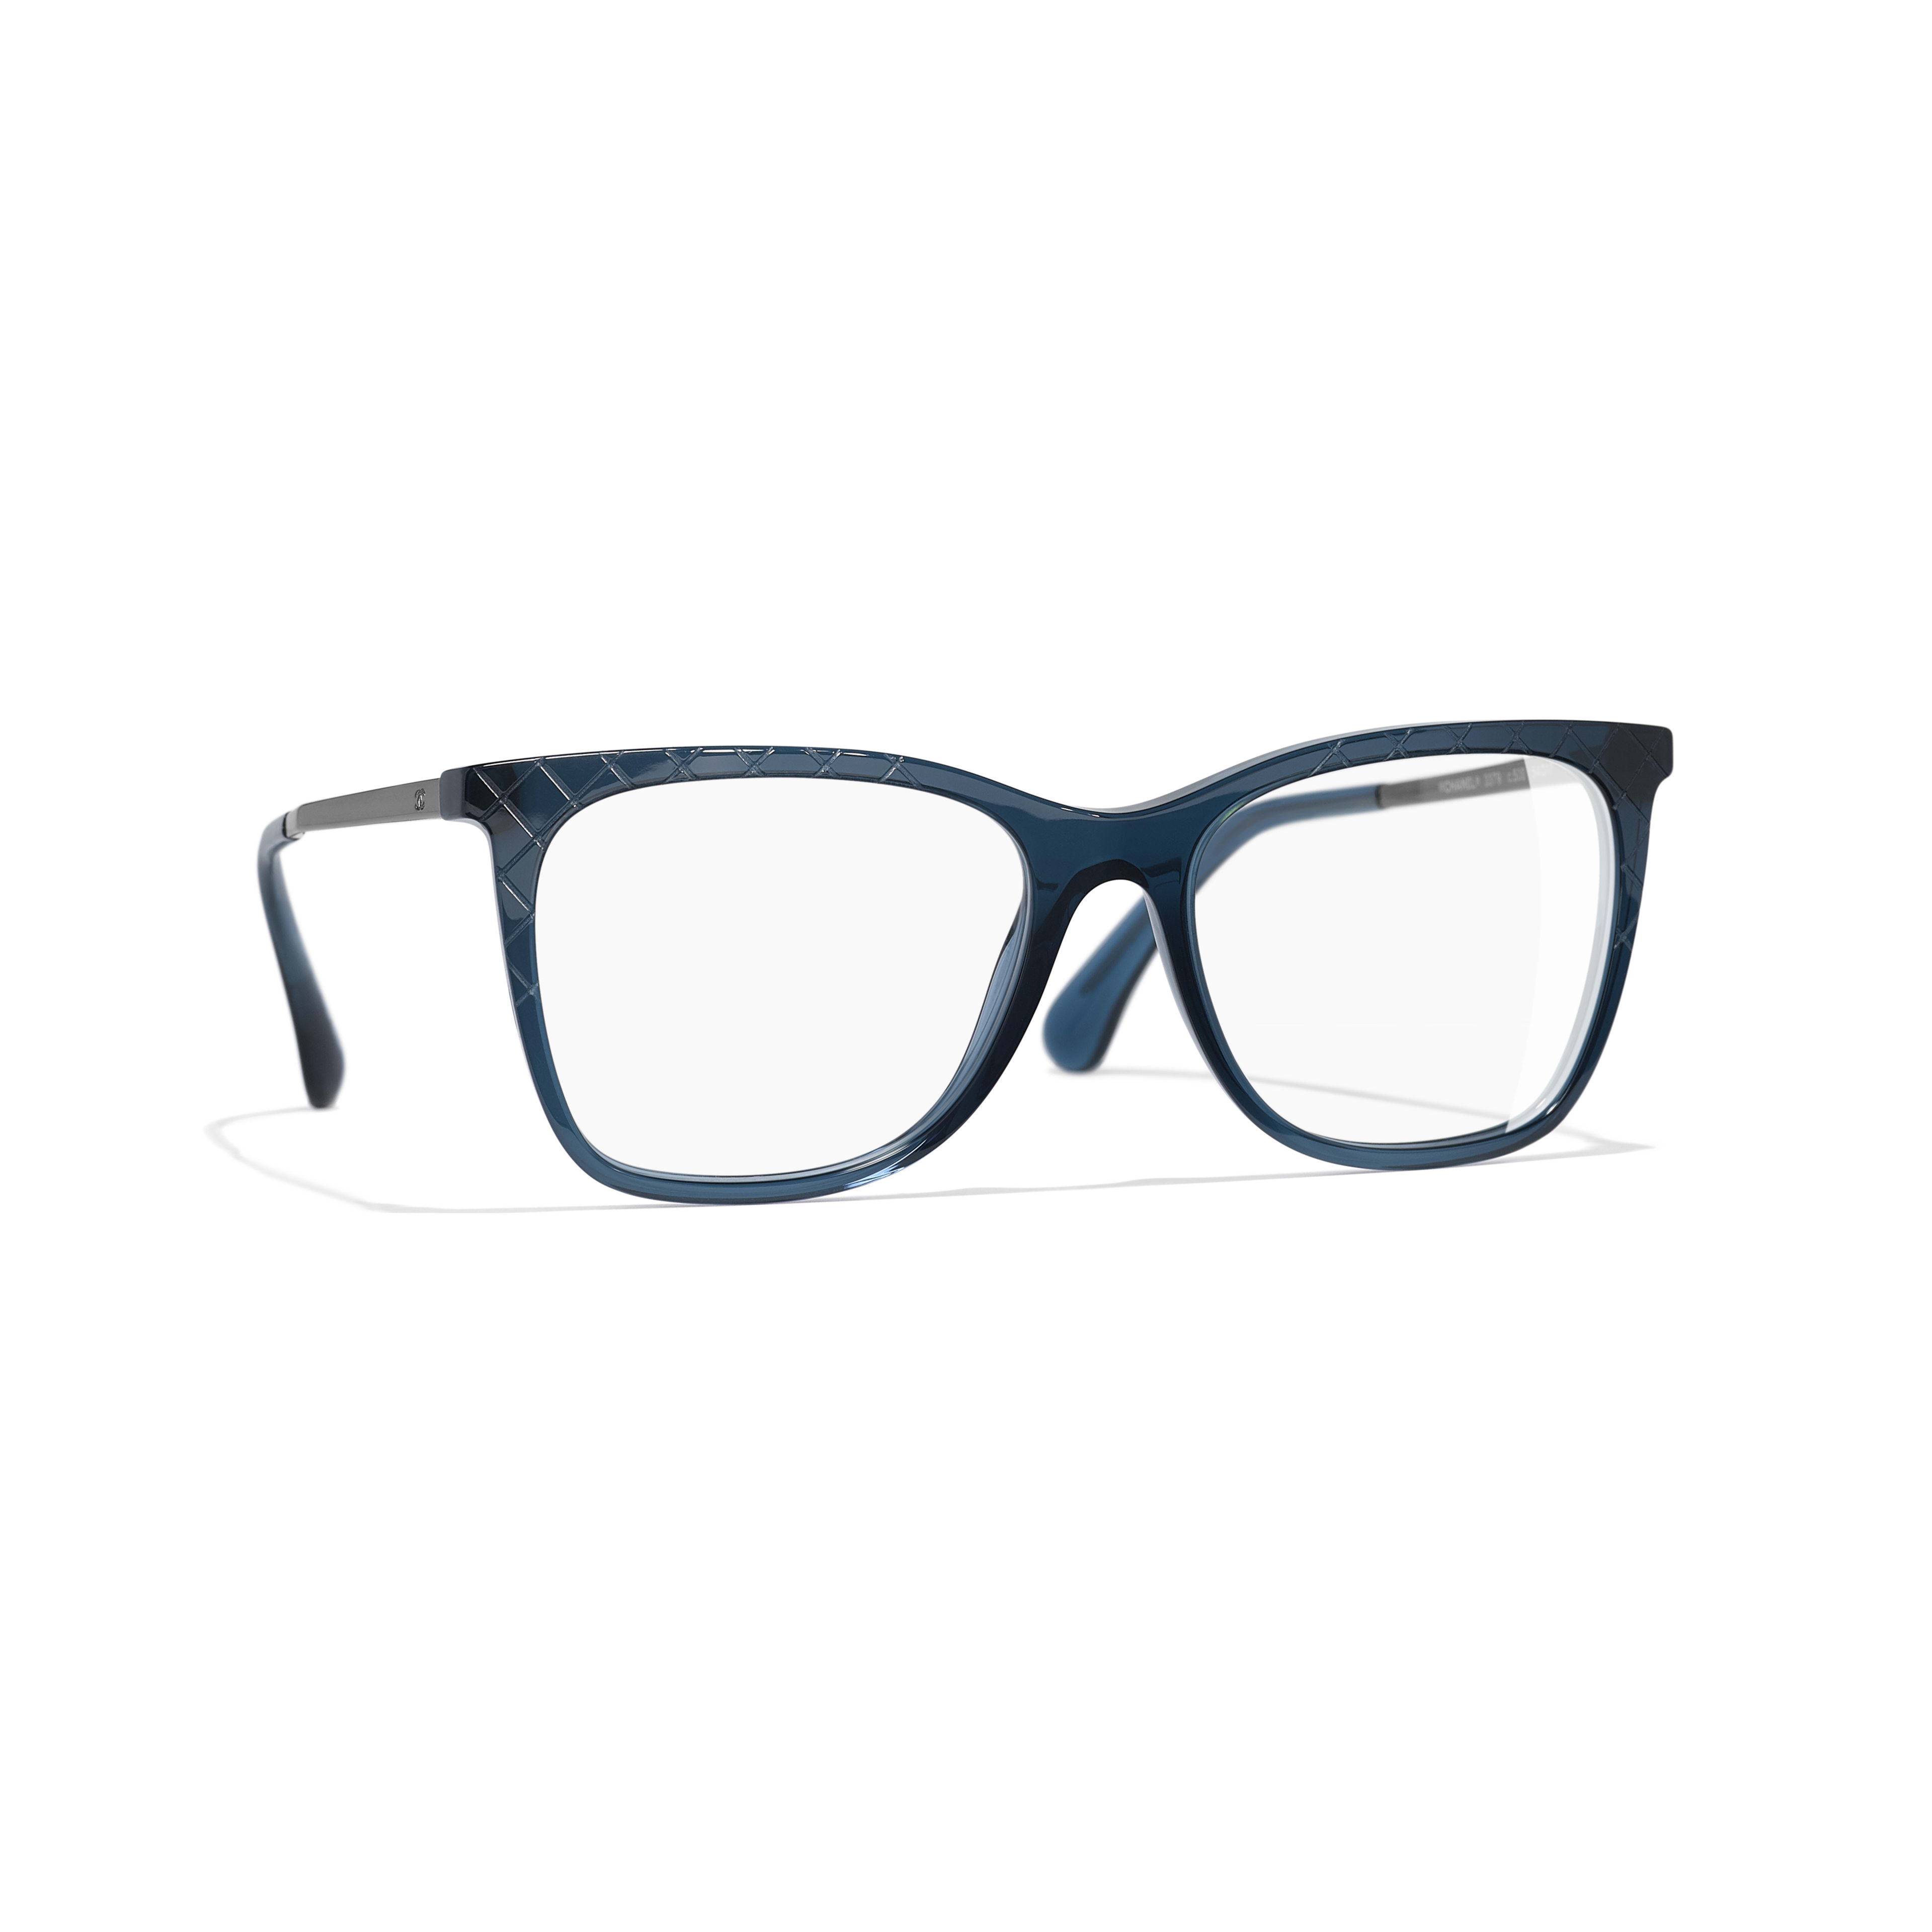 Rectangle Eyeglasses - Blue - Acetate & Metal - Default view - see full sized version